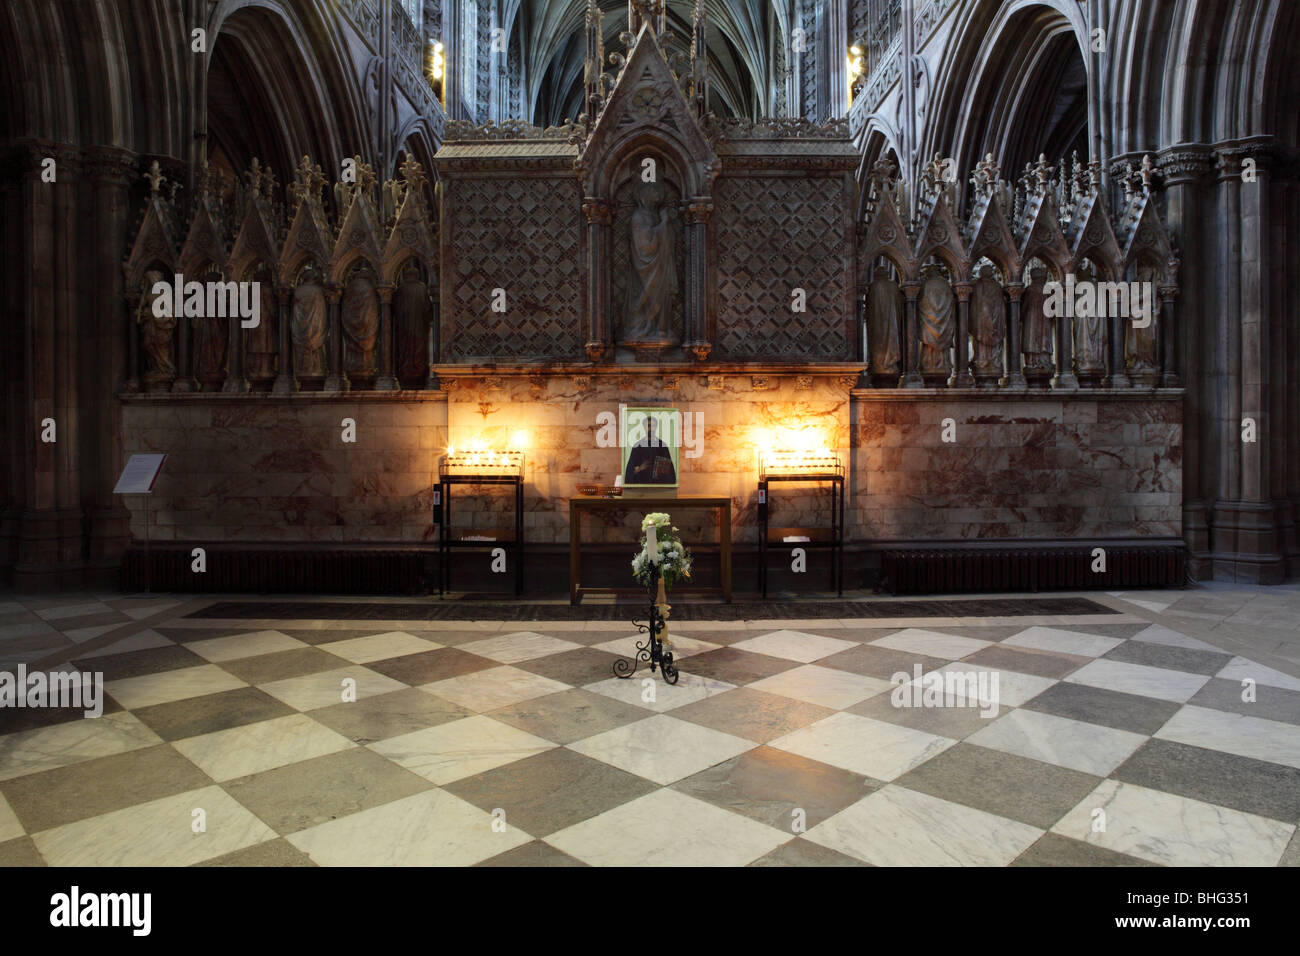 Subtle light adorns the Shrine of Saint Chad at Lichfield Cathedral in Staffordshire. - Stock Image